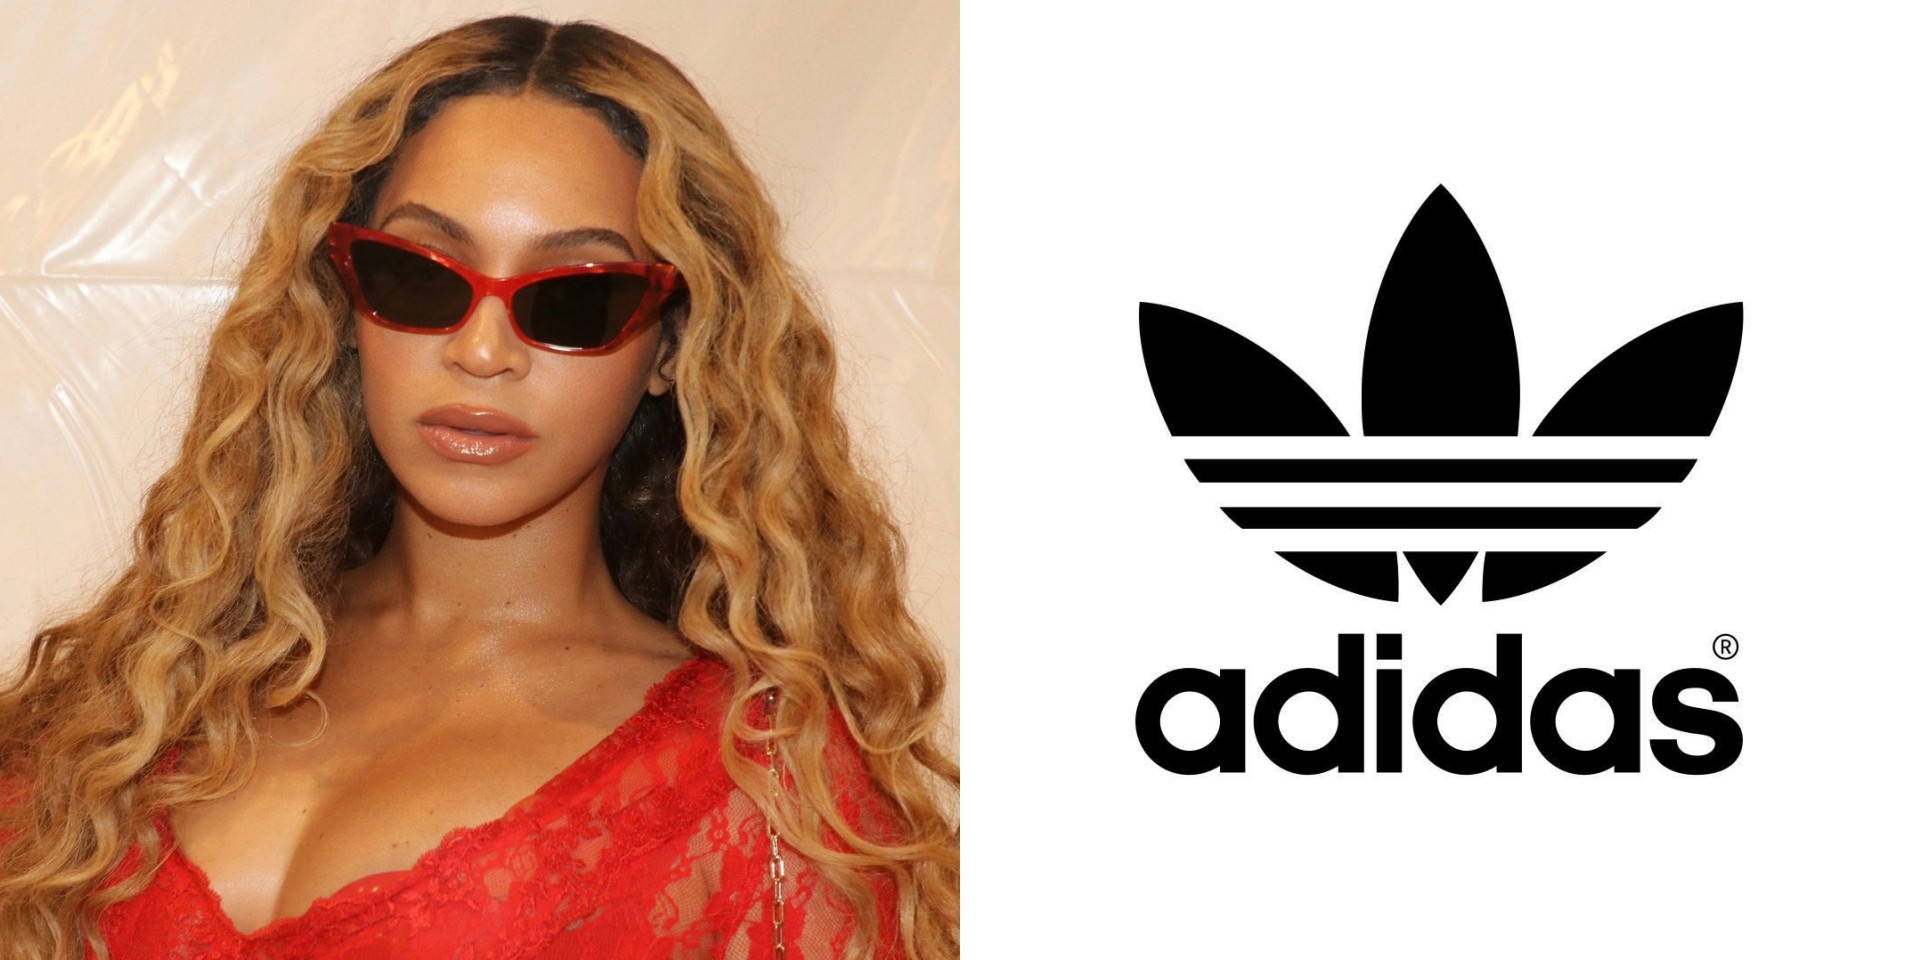 Beyoncé's new deal with adidas is a big move for both parties